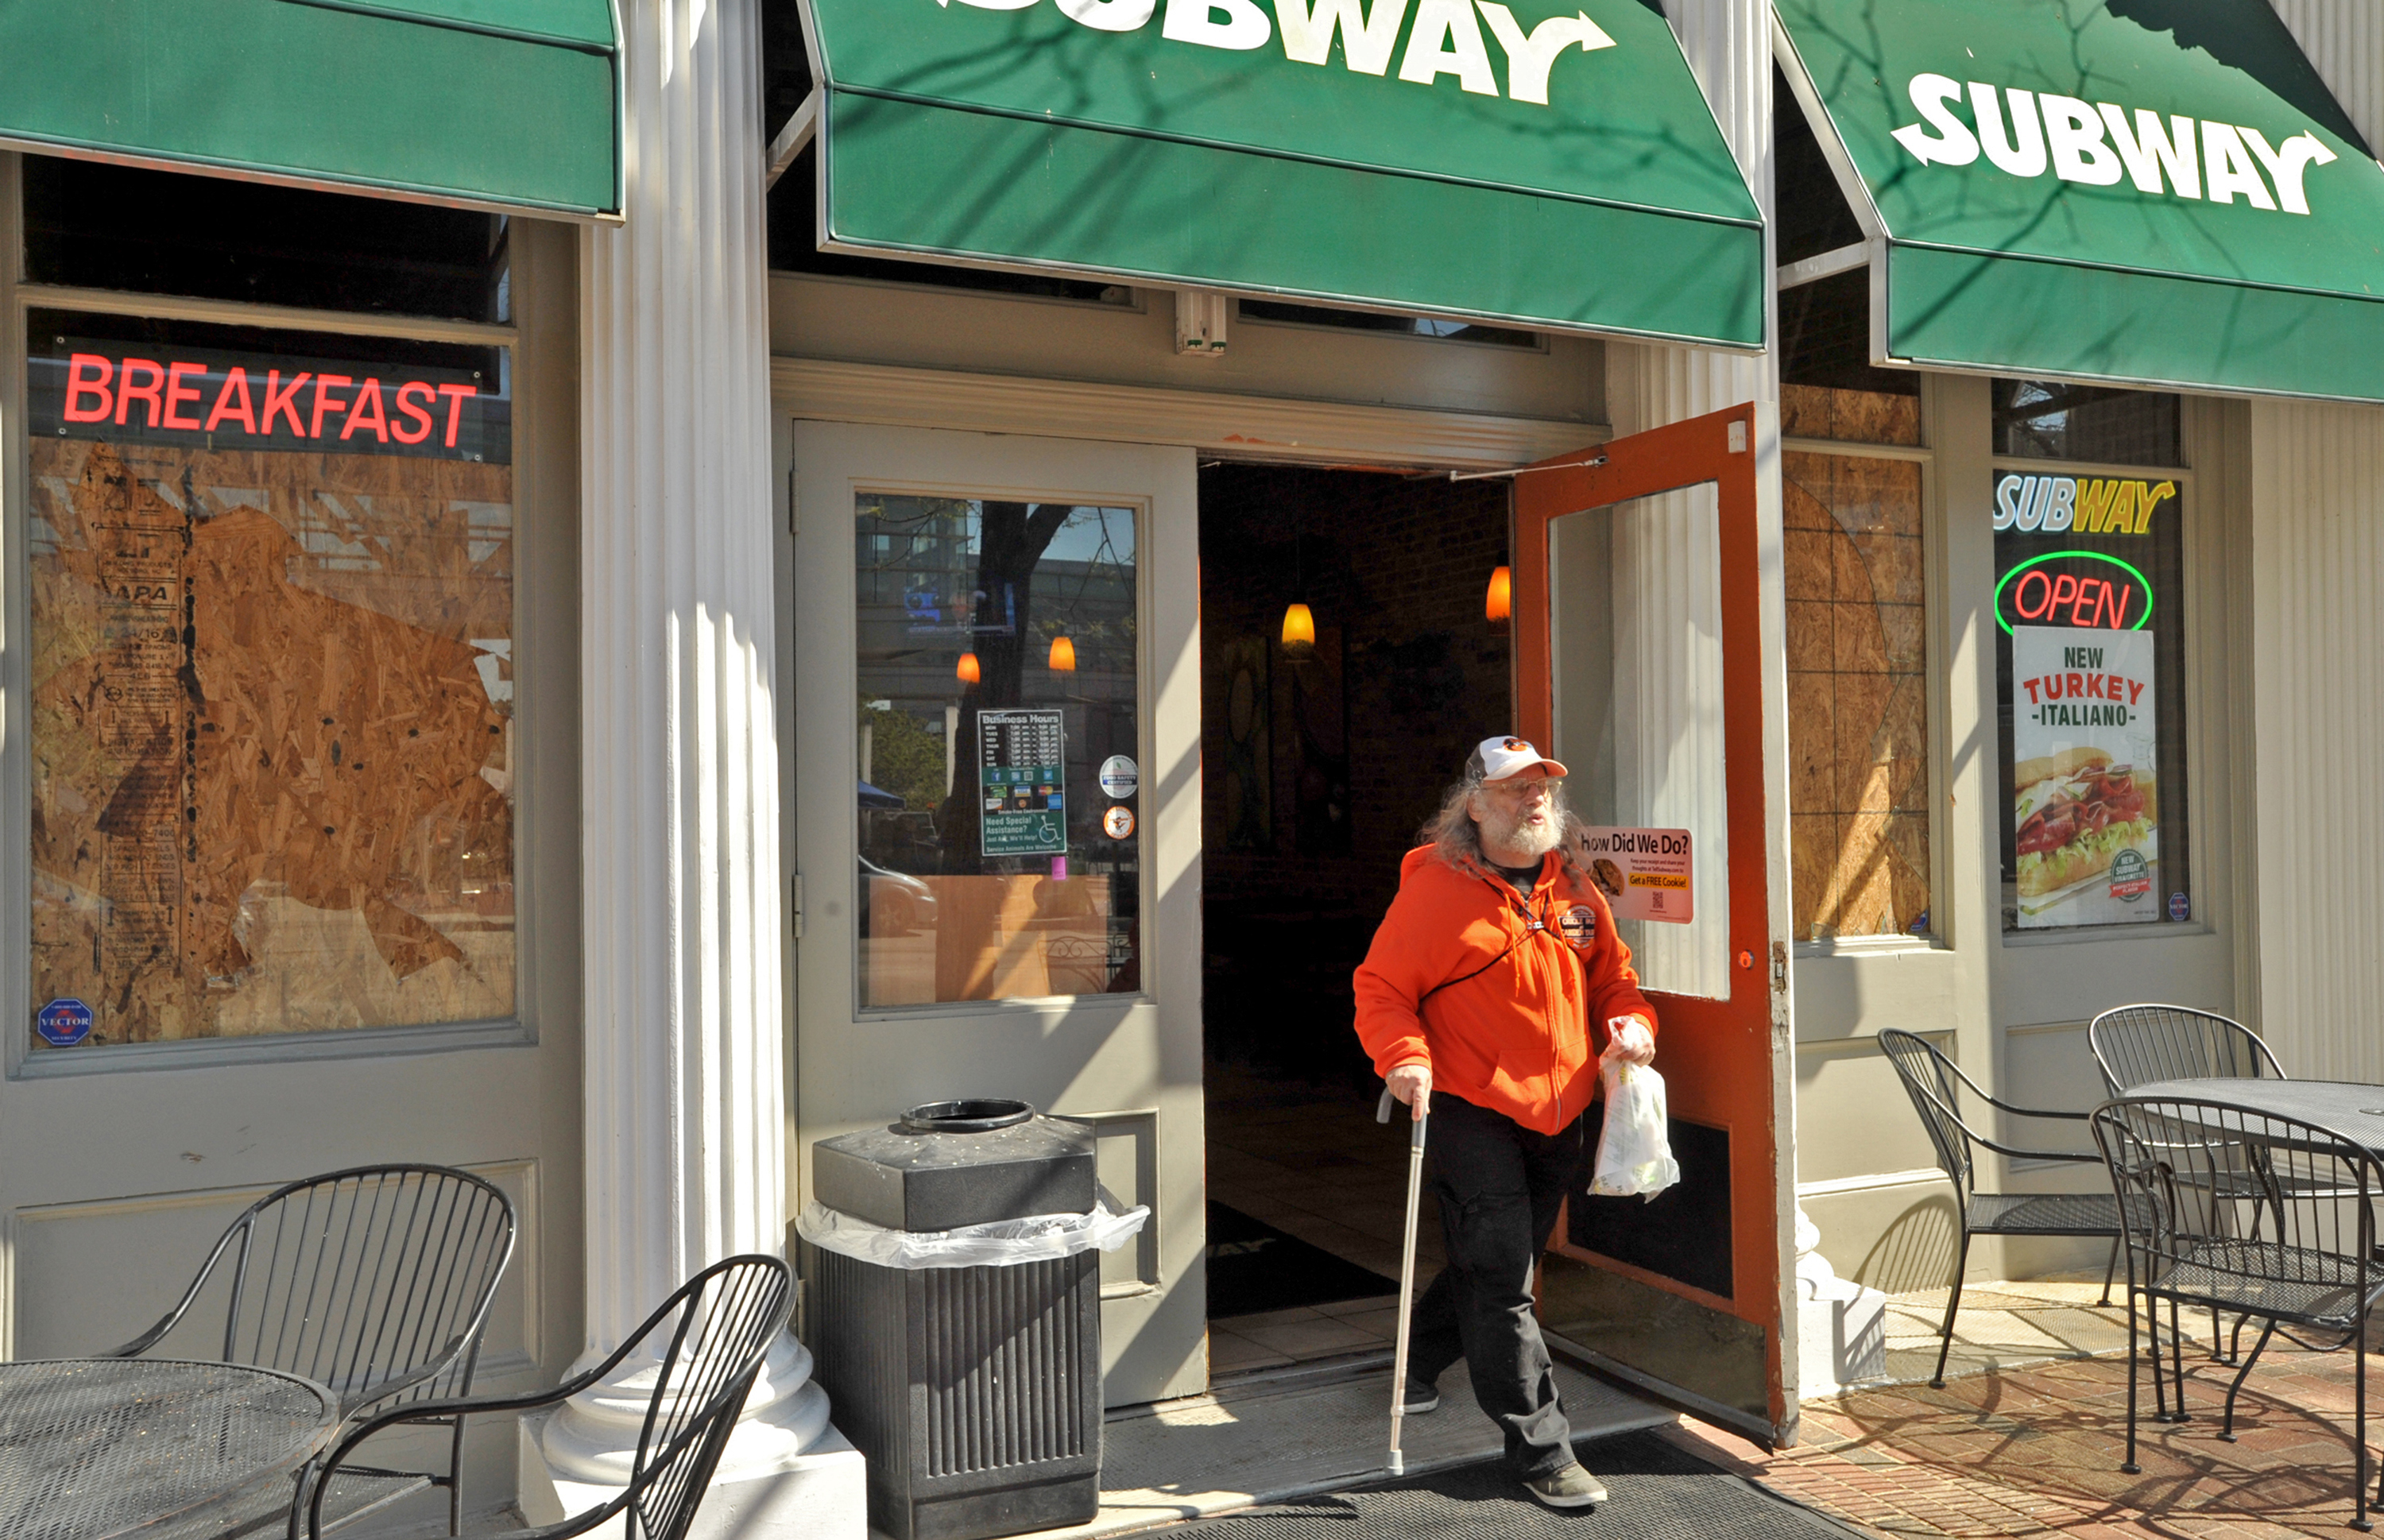 Alan Schwartz stops for food at a Subway restaurant in Baltimore, which was open despite boarded-up windows.